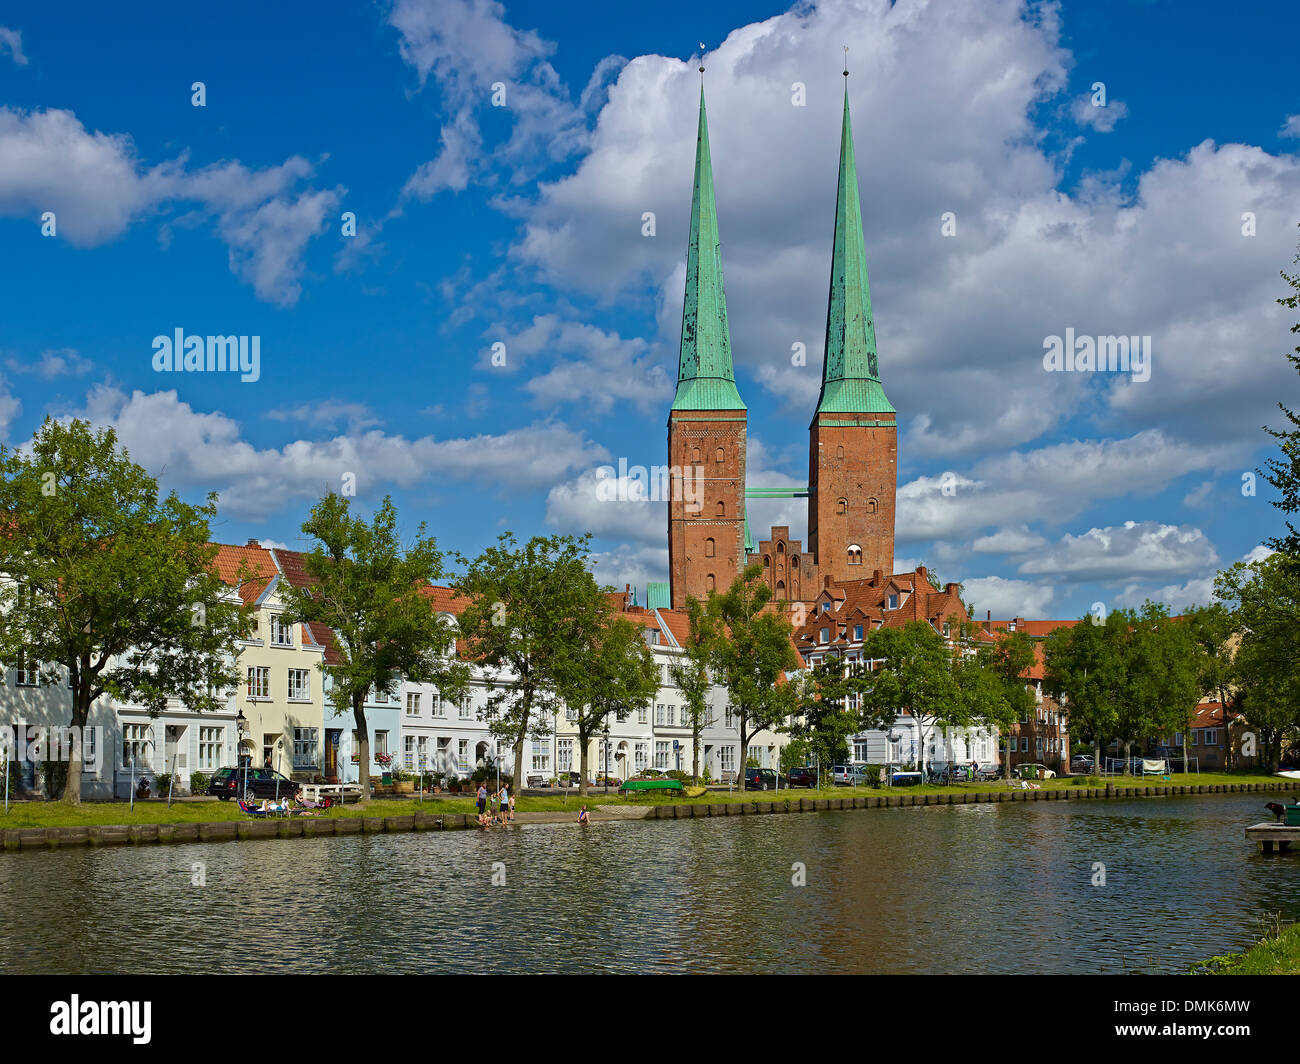 Cathedral with houses at River Trave, Lübeck, Schleswig-Holstein, Germany - Stock Image